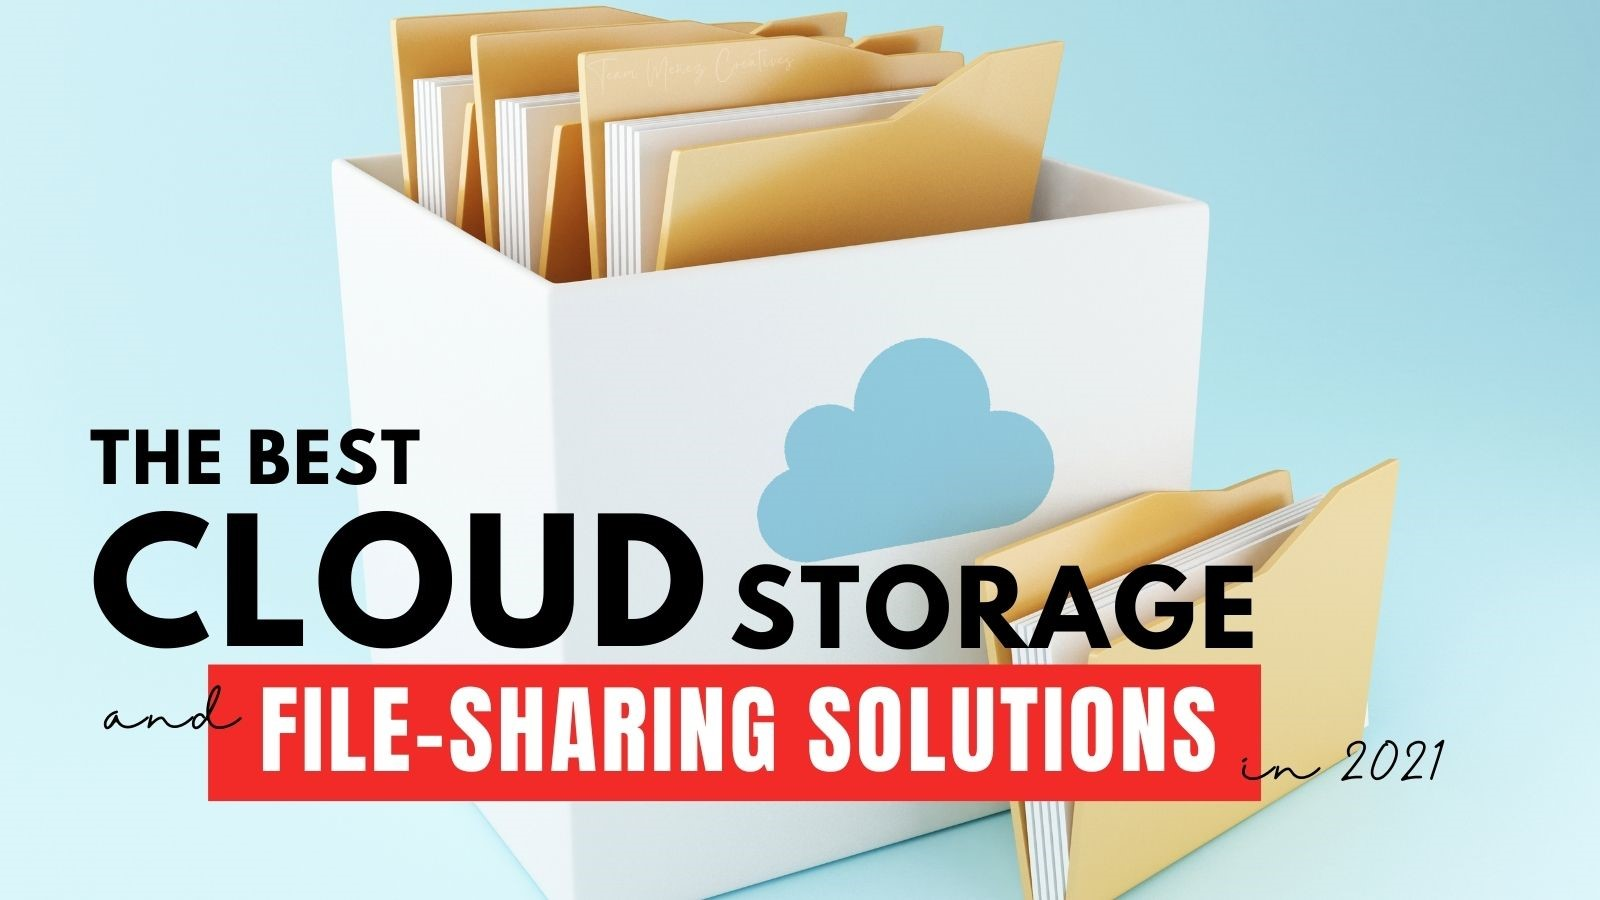 6 Best Cloud Storage and File-Sharing Solutions for 2021